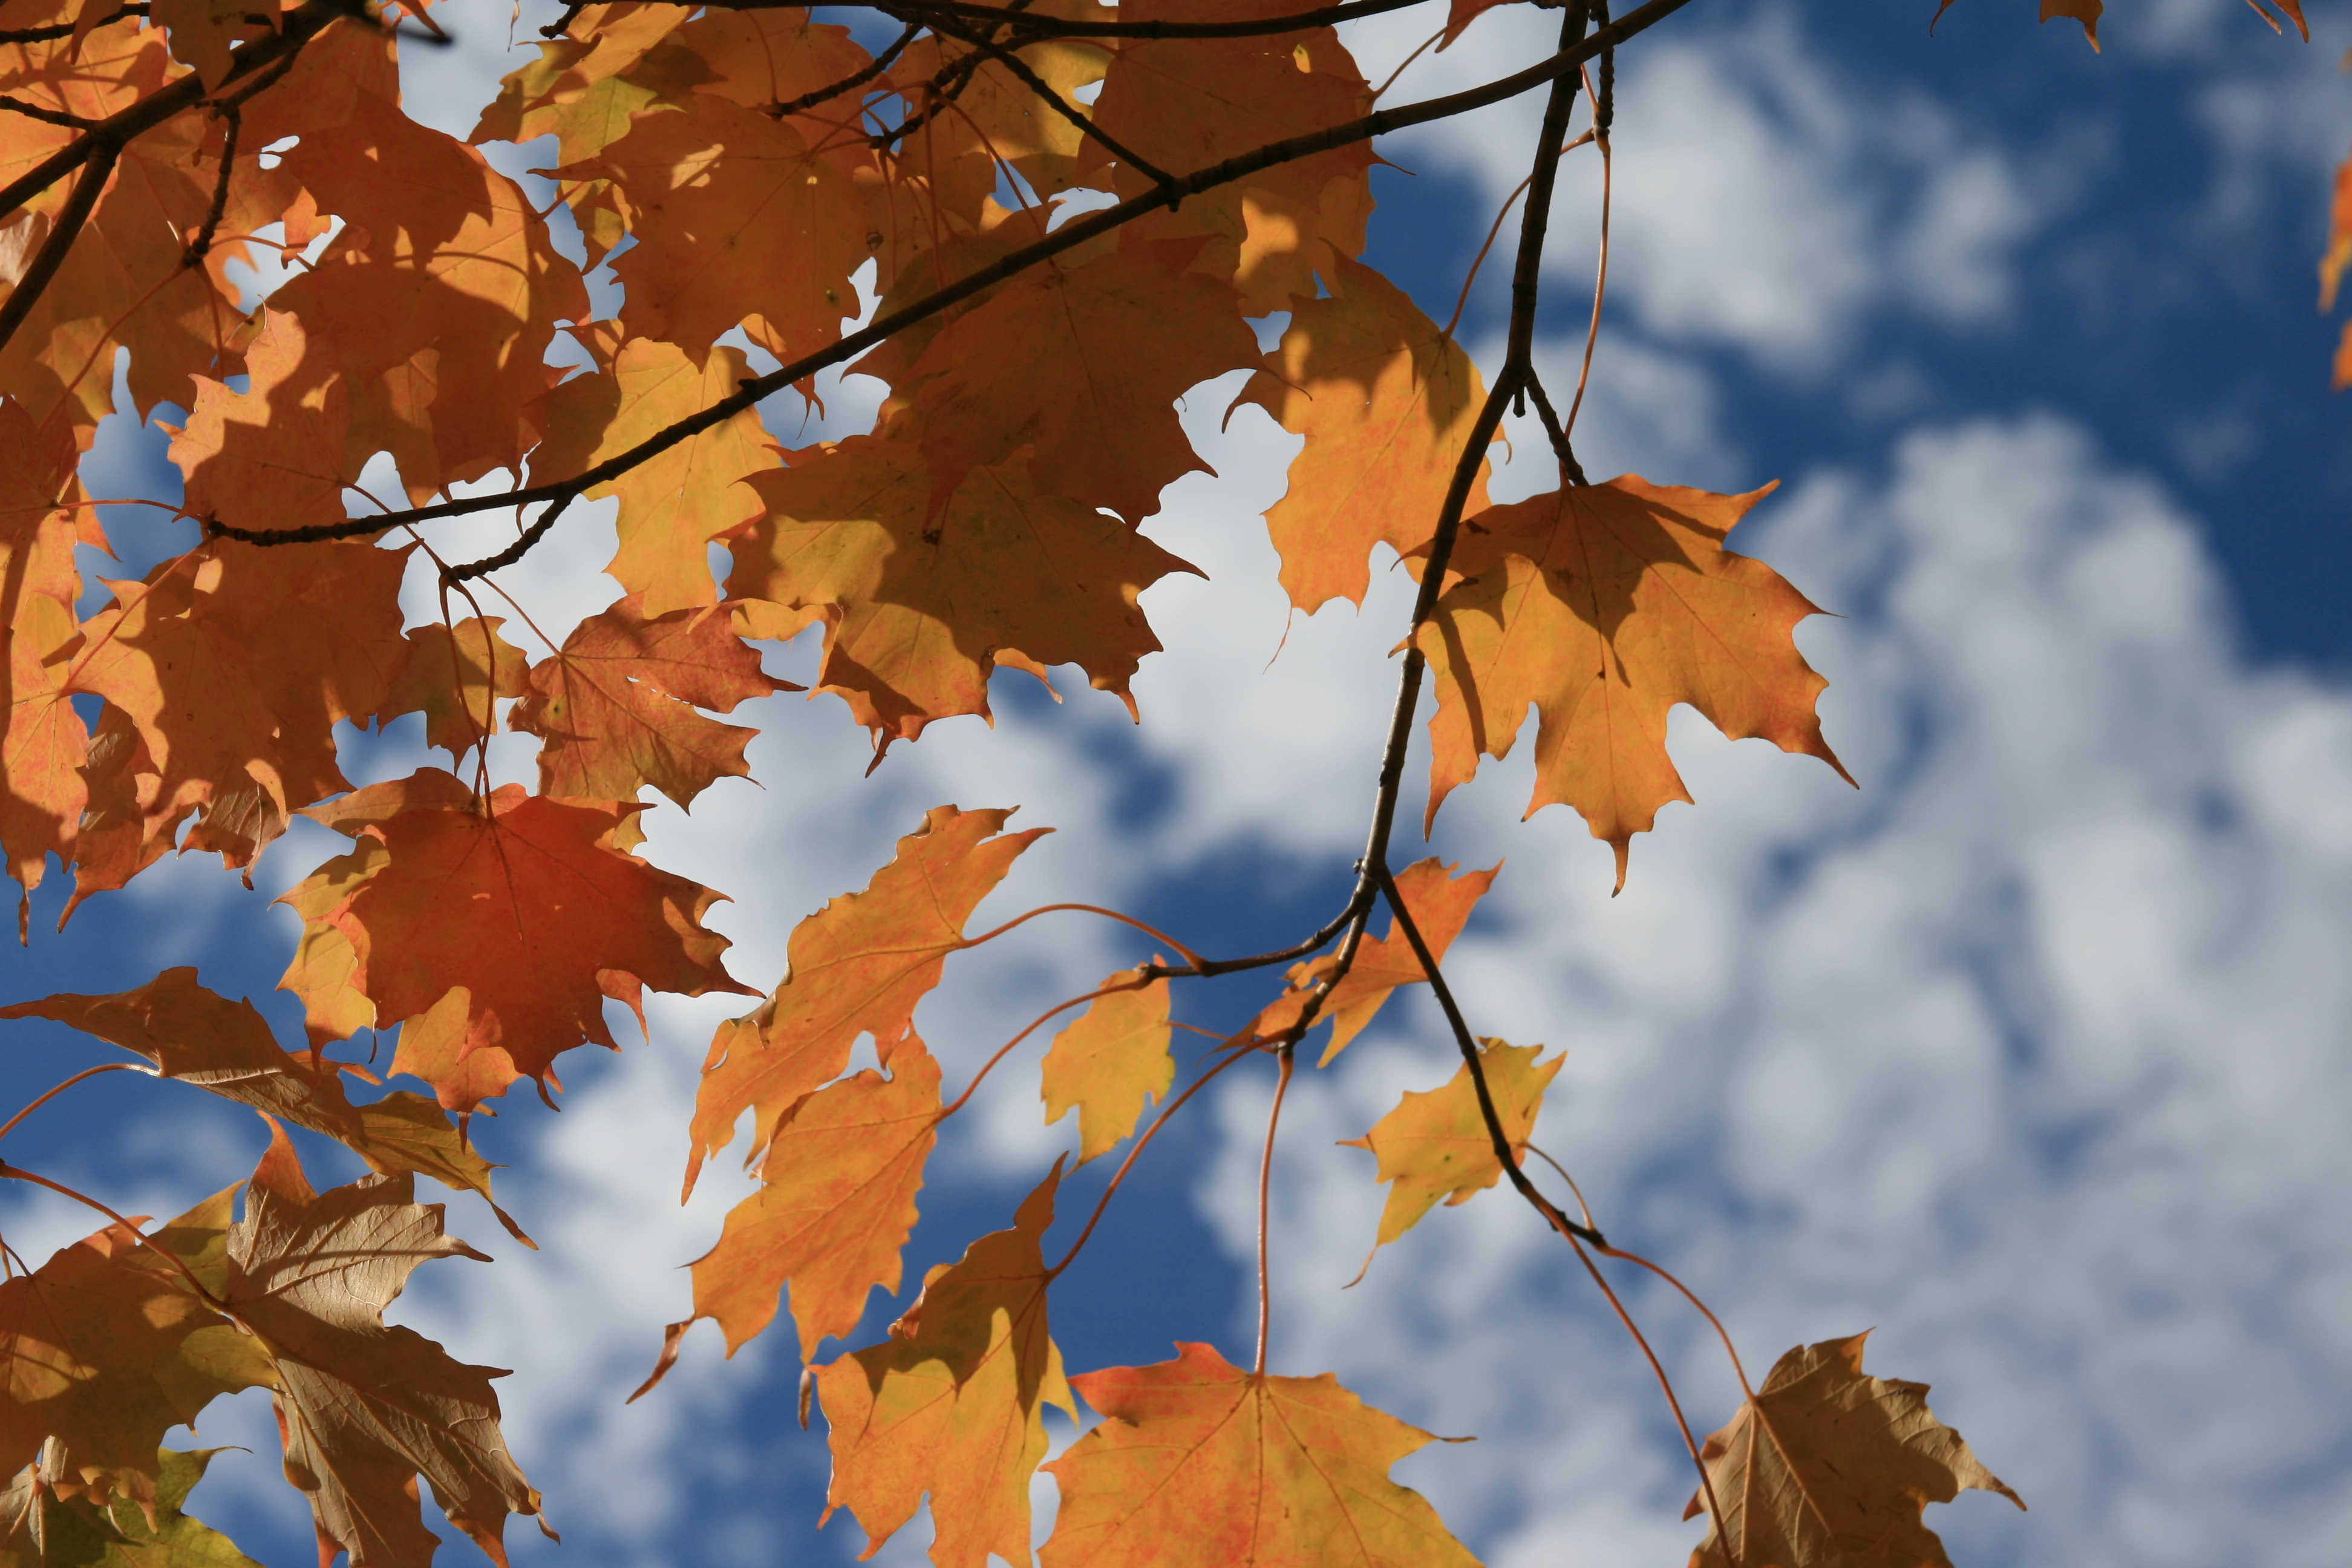 Gold on Blue, Autumn, Clouds, Fall, Leaf, HQ Photo